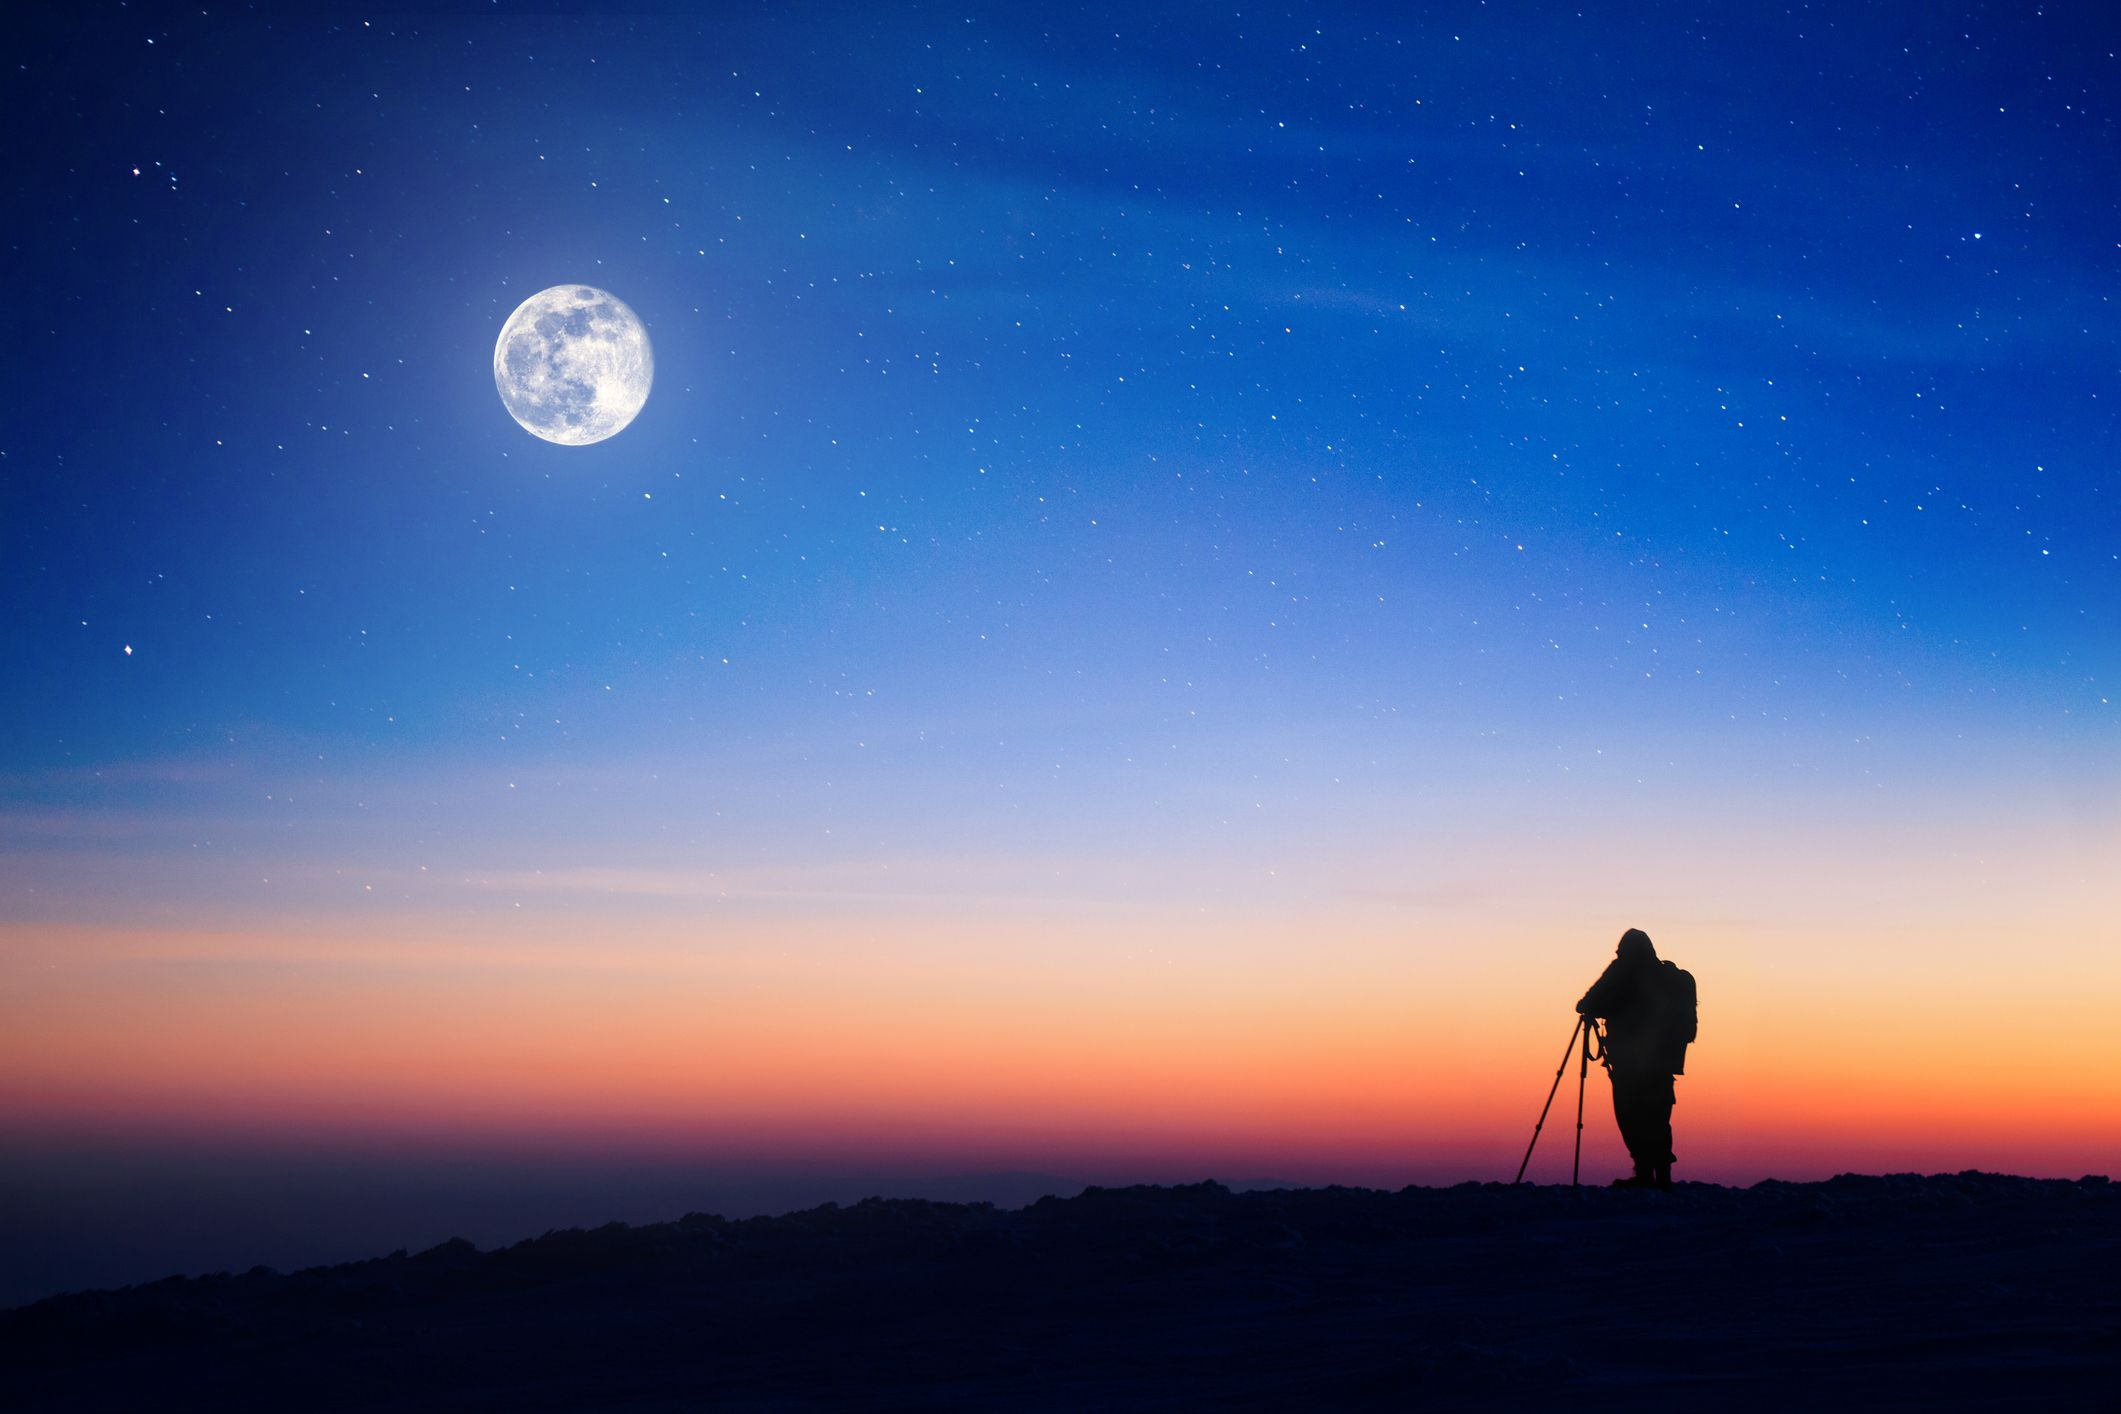 Photographingfullmoon-GettyImages-168433755-59721d166f53ba0010646ab8